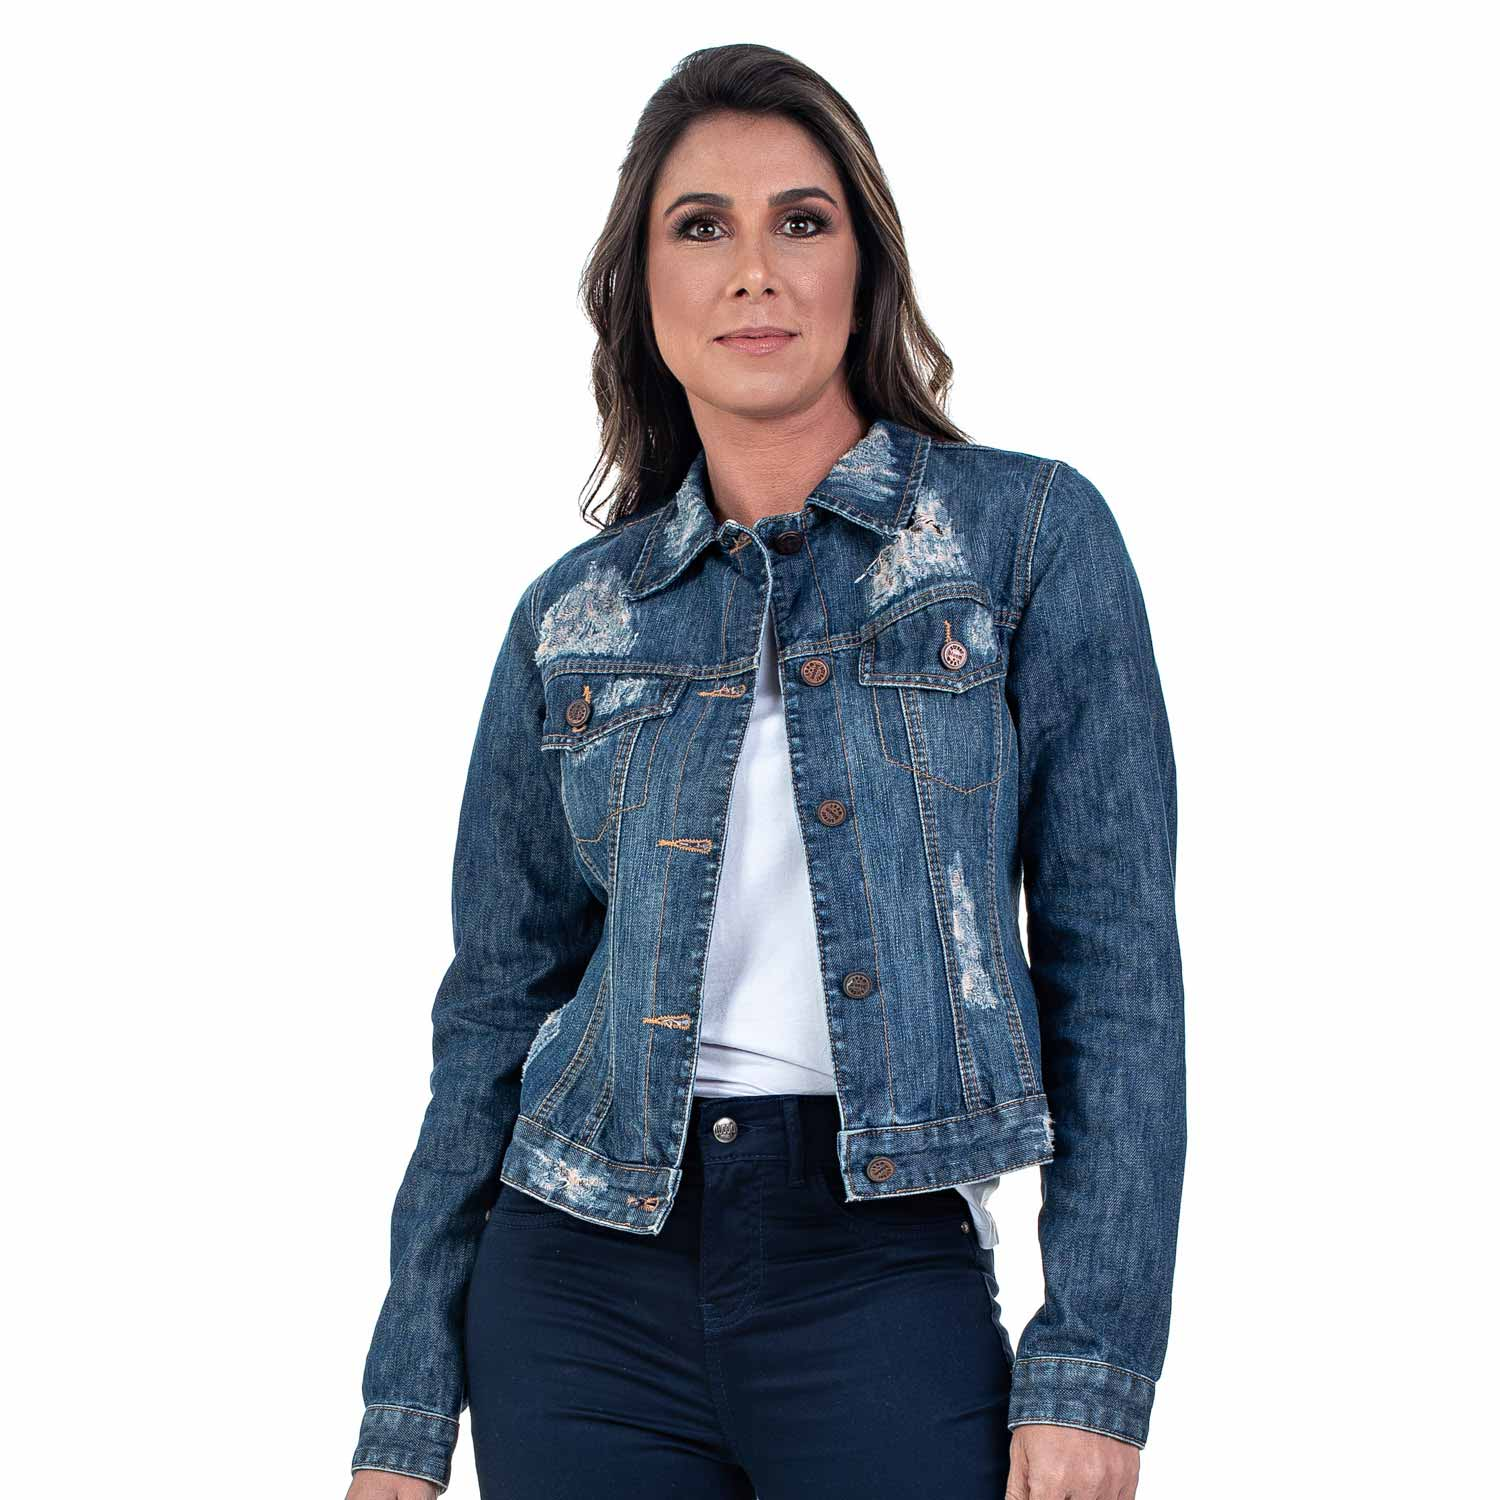 Jaqueta Jeans Bloom Destroyed Avesso Estampado